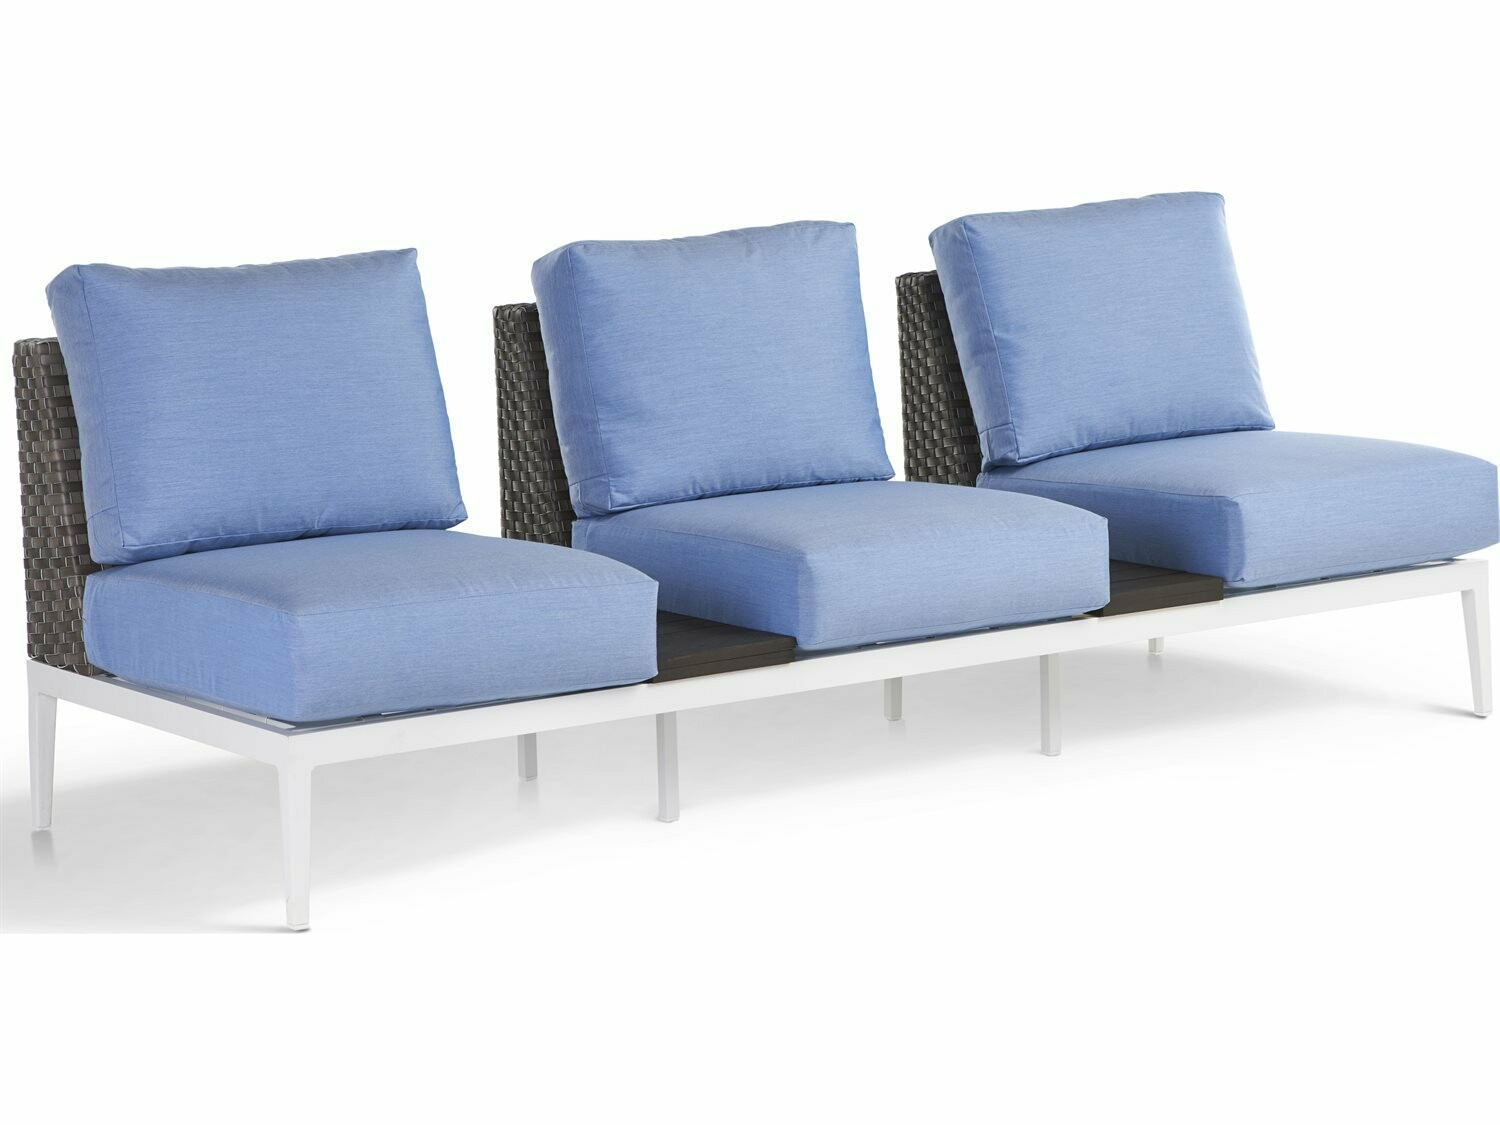 South Sea Rattan Stevie Wicker Loveseat with Tables